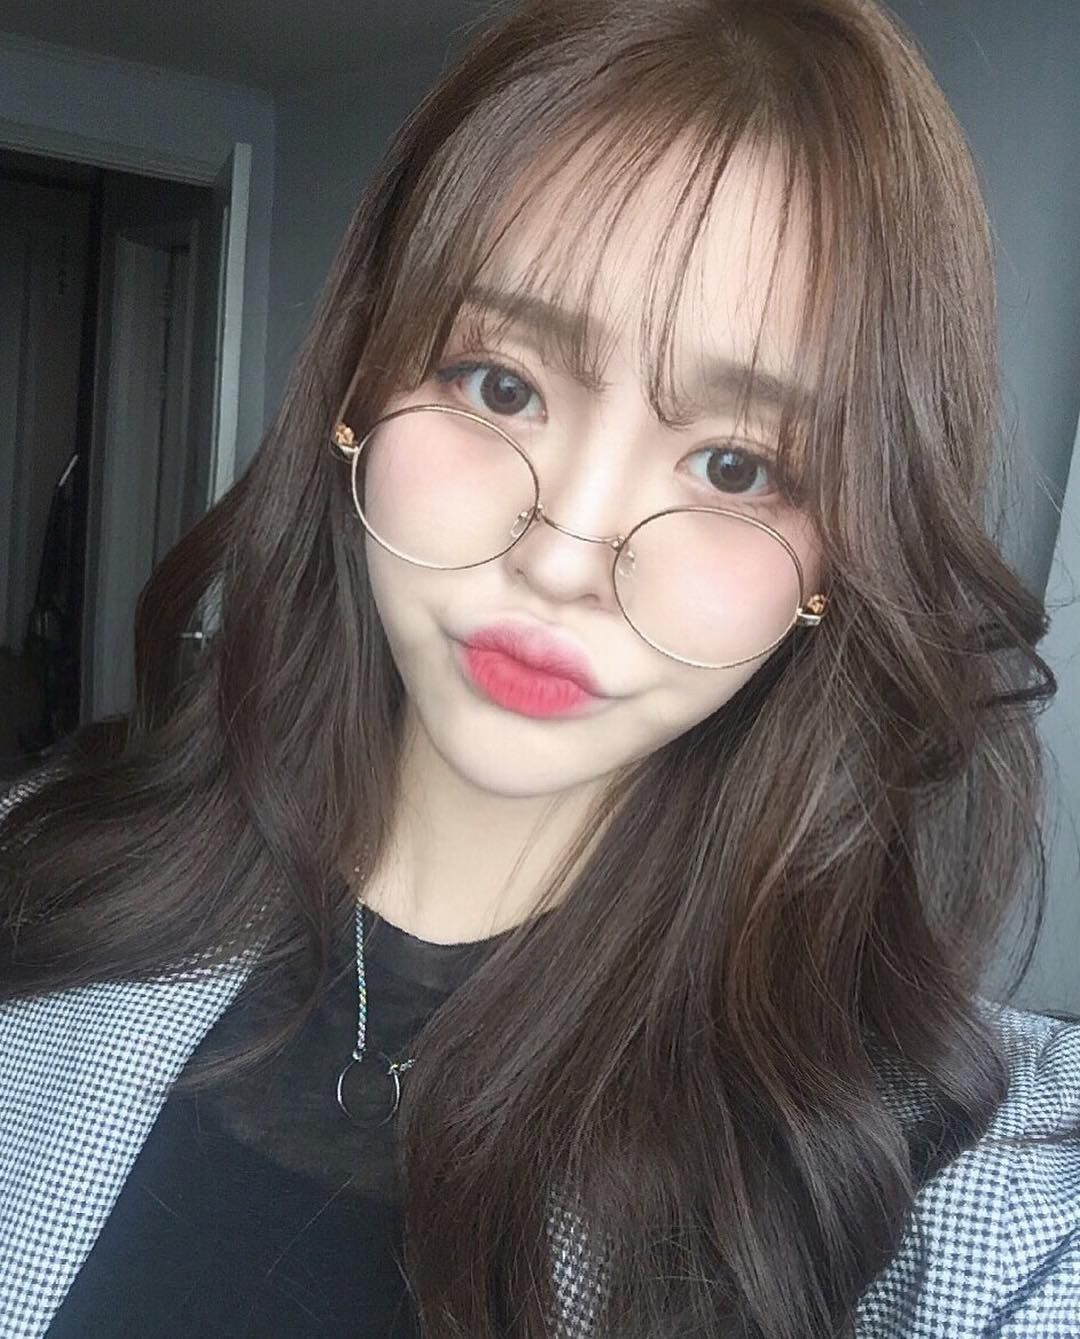 Ulzzang makeup Kbeauty Korean makeup looks+products